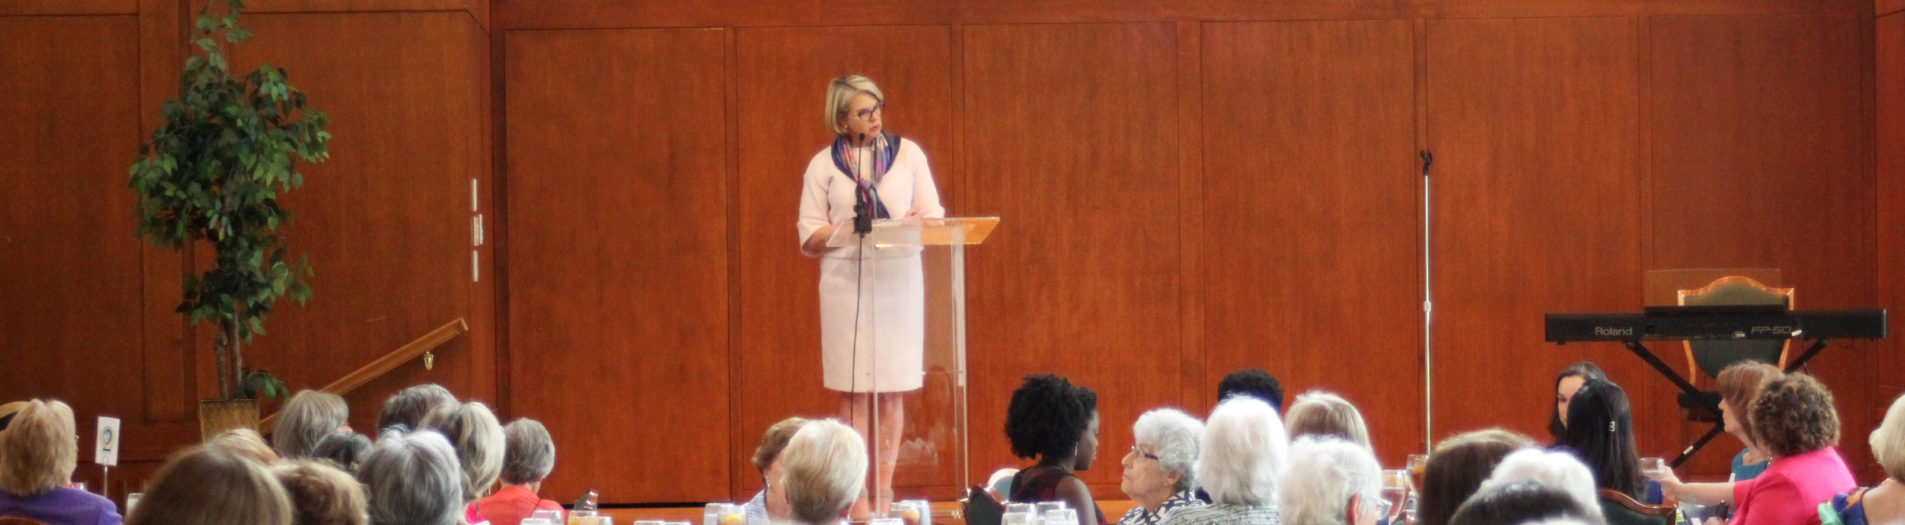 Margaret Spellings speaks at the Carolina Club in Chapel Hill, NC